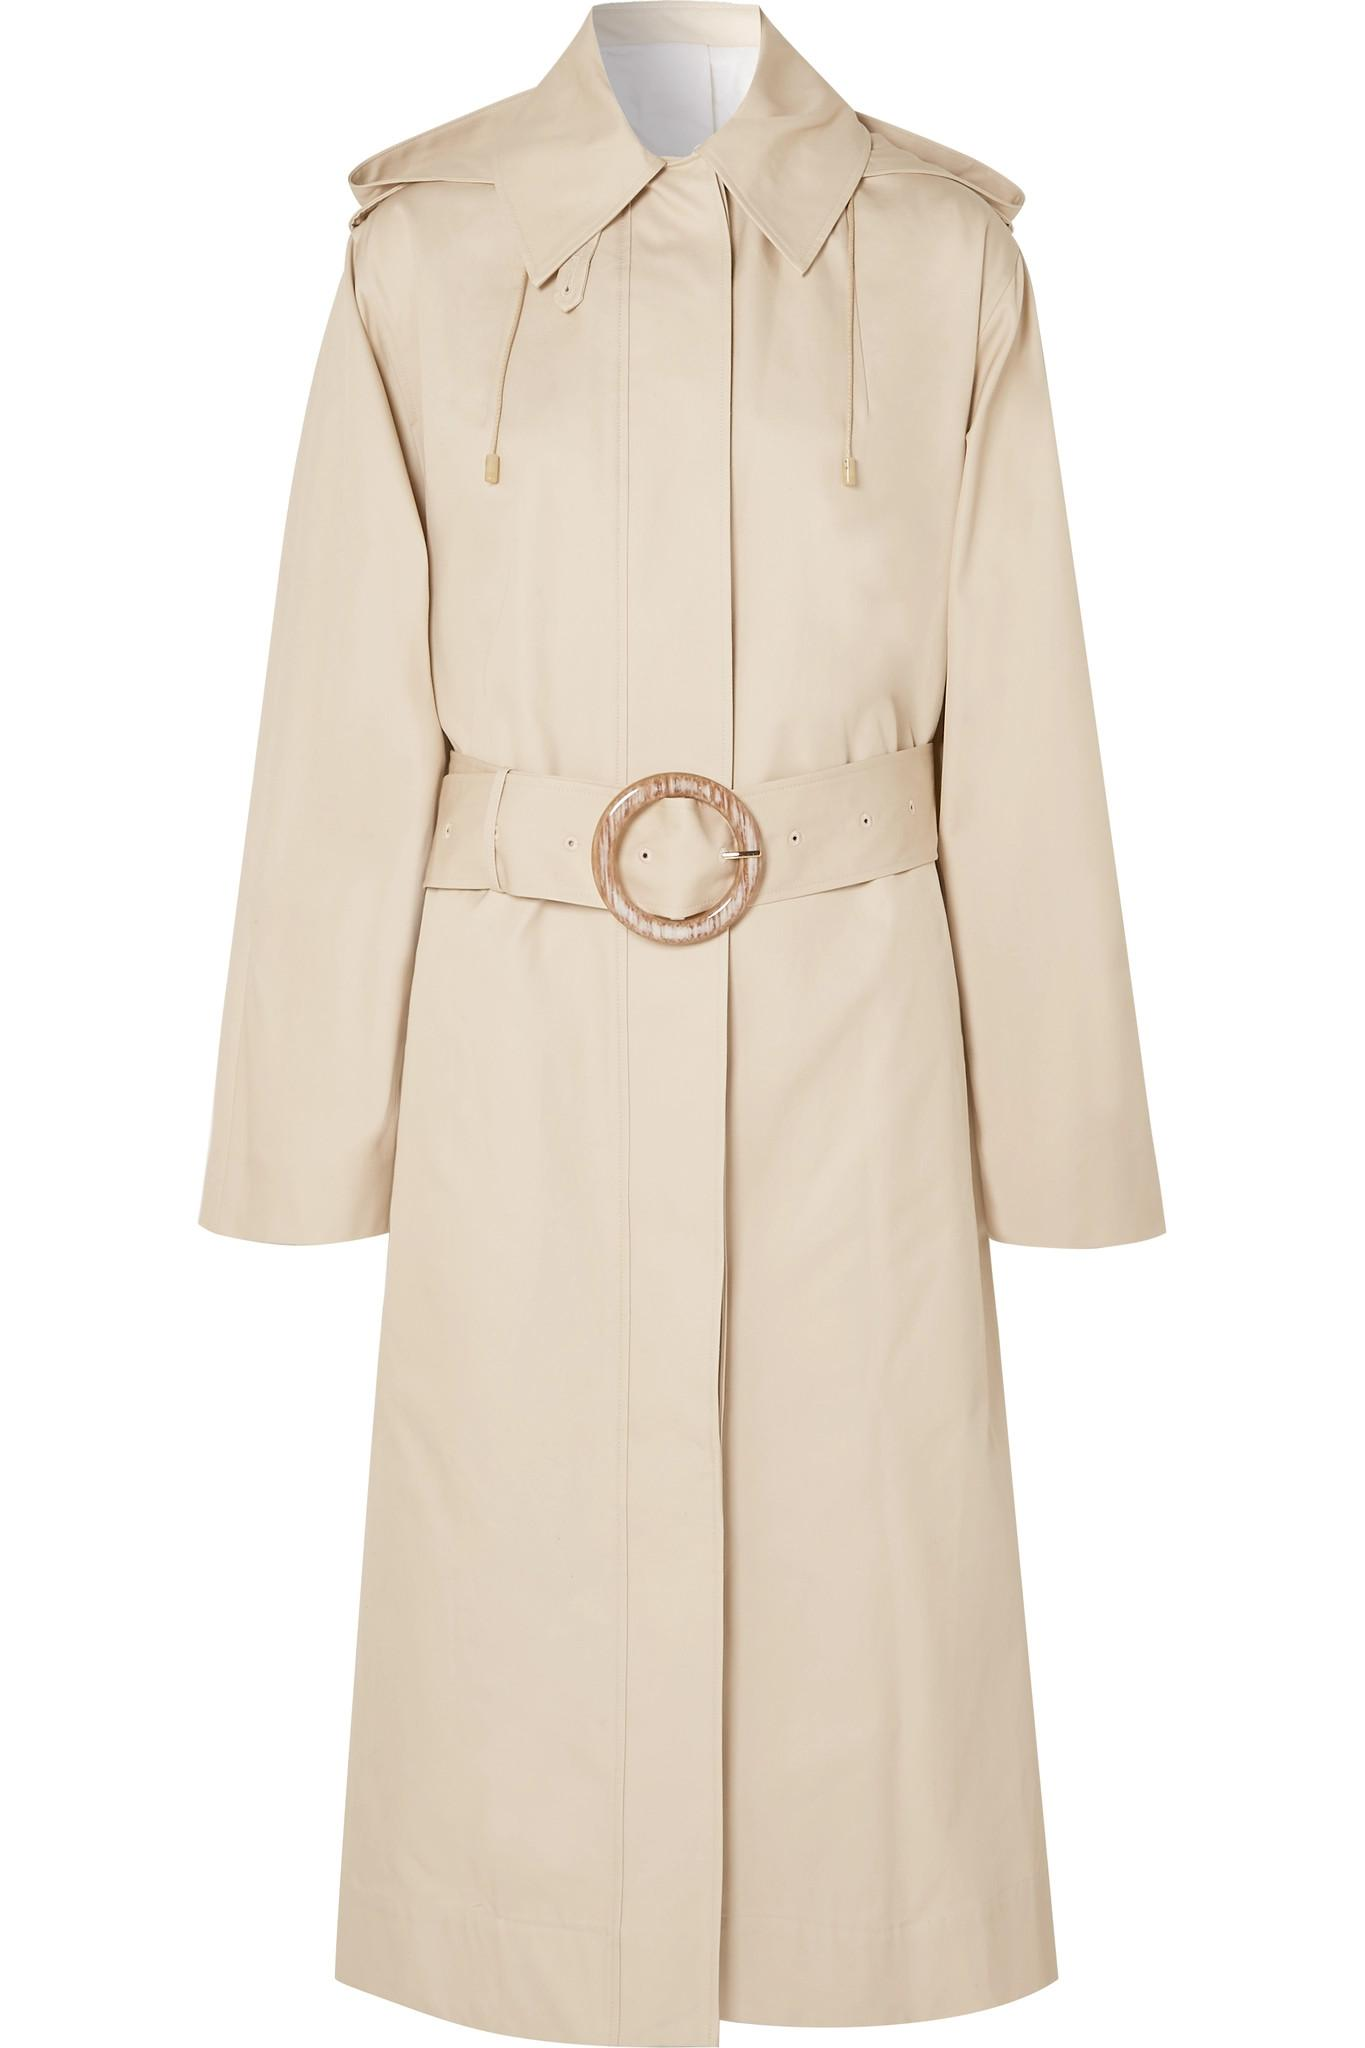 87278982bed8 Lyst - JOSEPH Carbon Hooded Cotton-garbardine Trench Coat in Natural